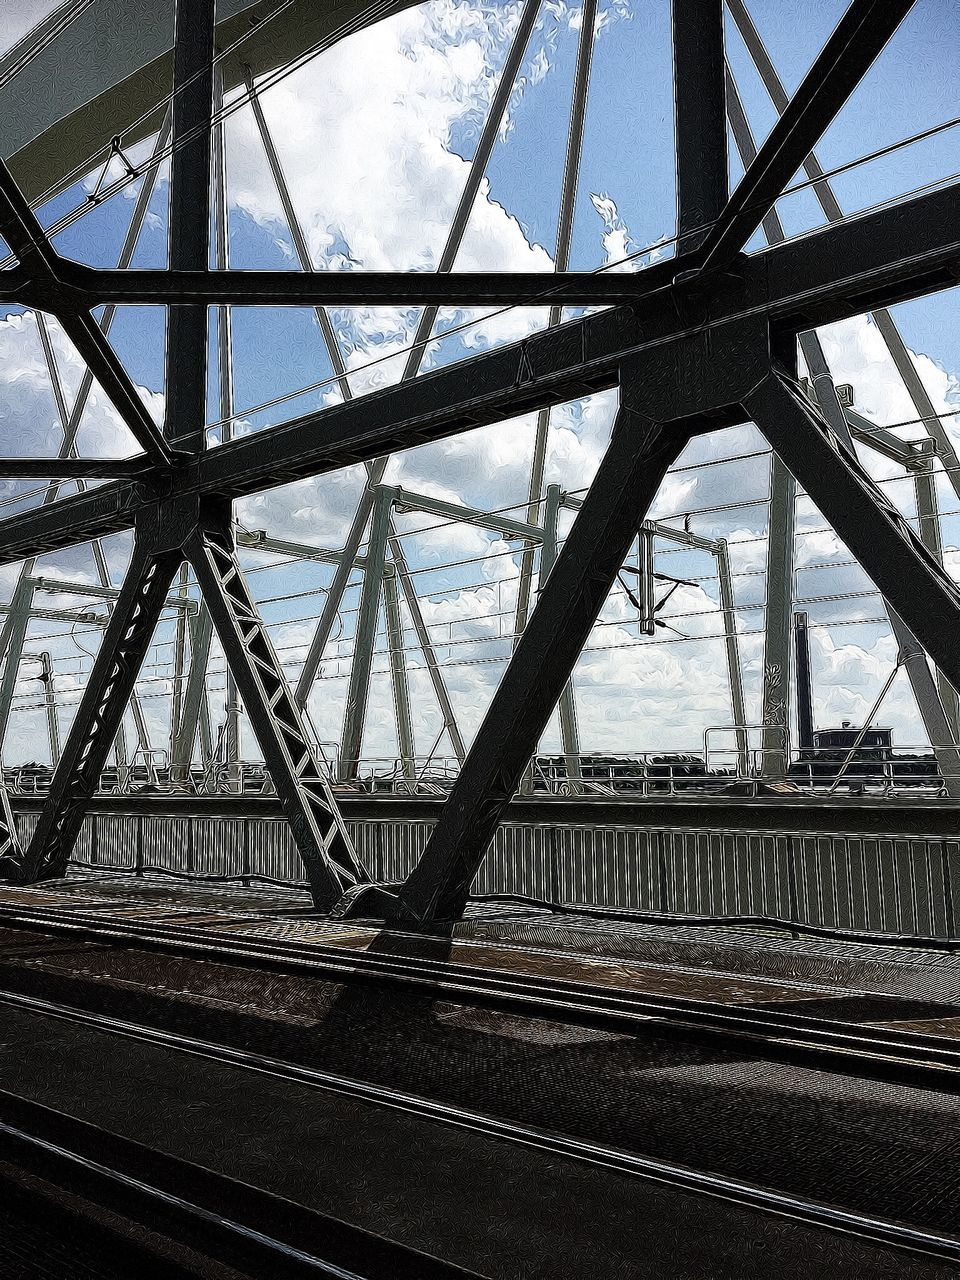 bridge - man made structure, sky, transportation, connection, built structure, day, architecture, cloud - sky, outdoors, no people, low angle view, girder, city